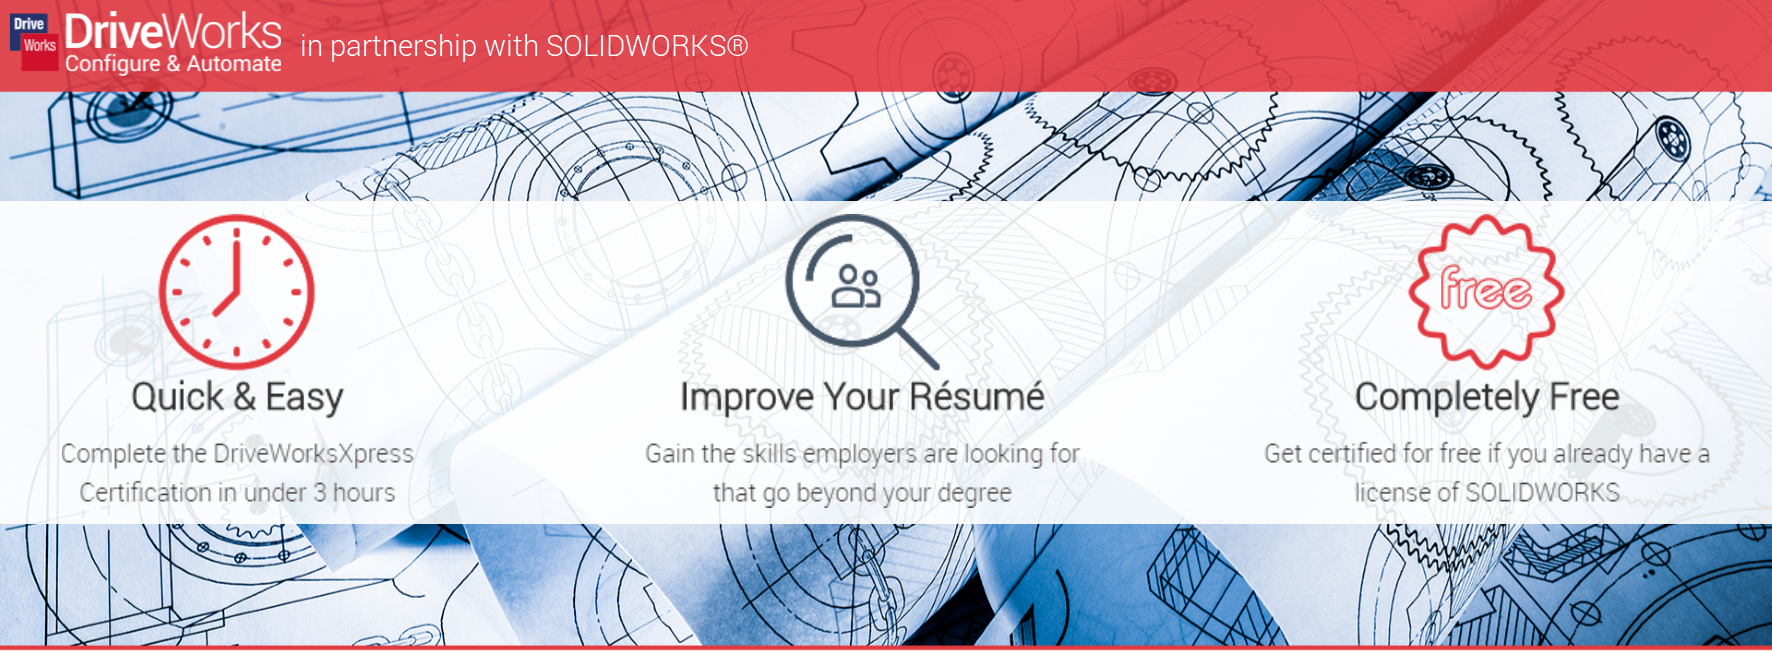 SOLIDWORKS Students: Gain an Extra Qualification to Improve